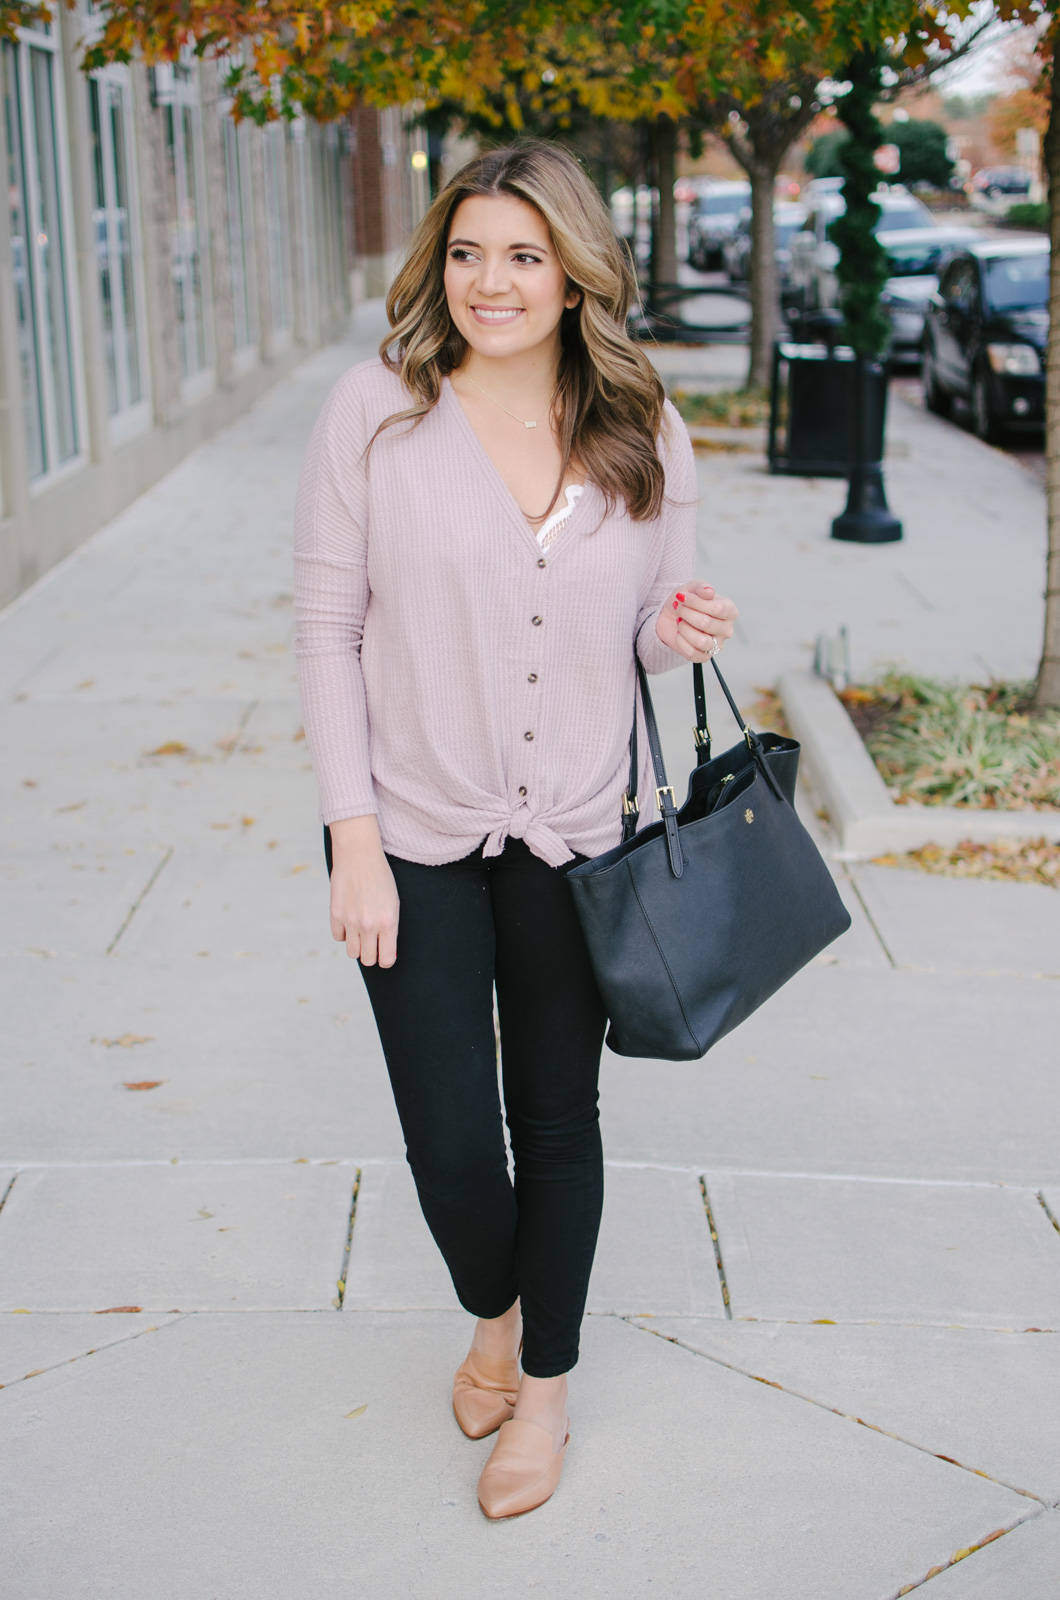 thermal top outfit - how to wear a thermal top | See more Winter outfit ideas or get outfit details by clicking through to bylaurenm.com!